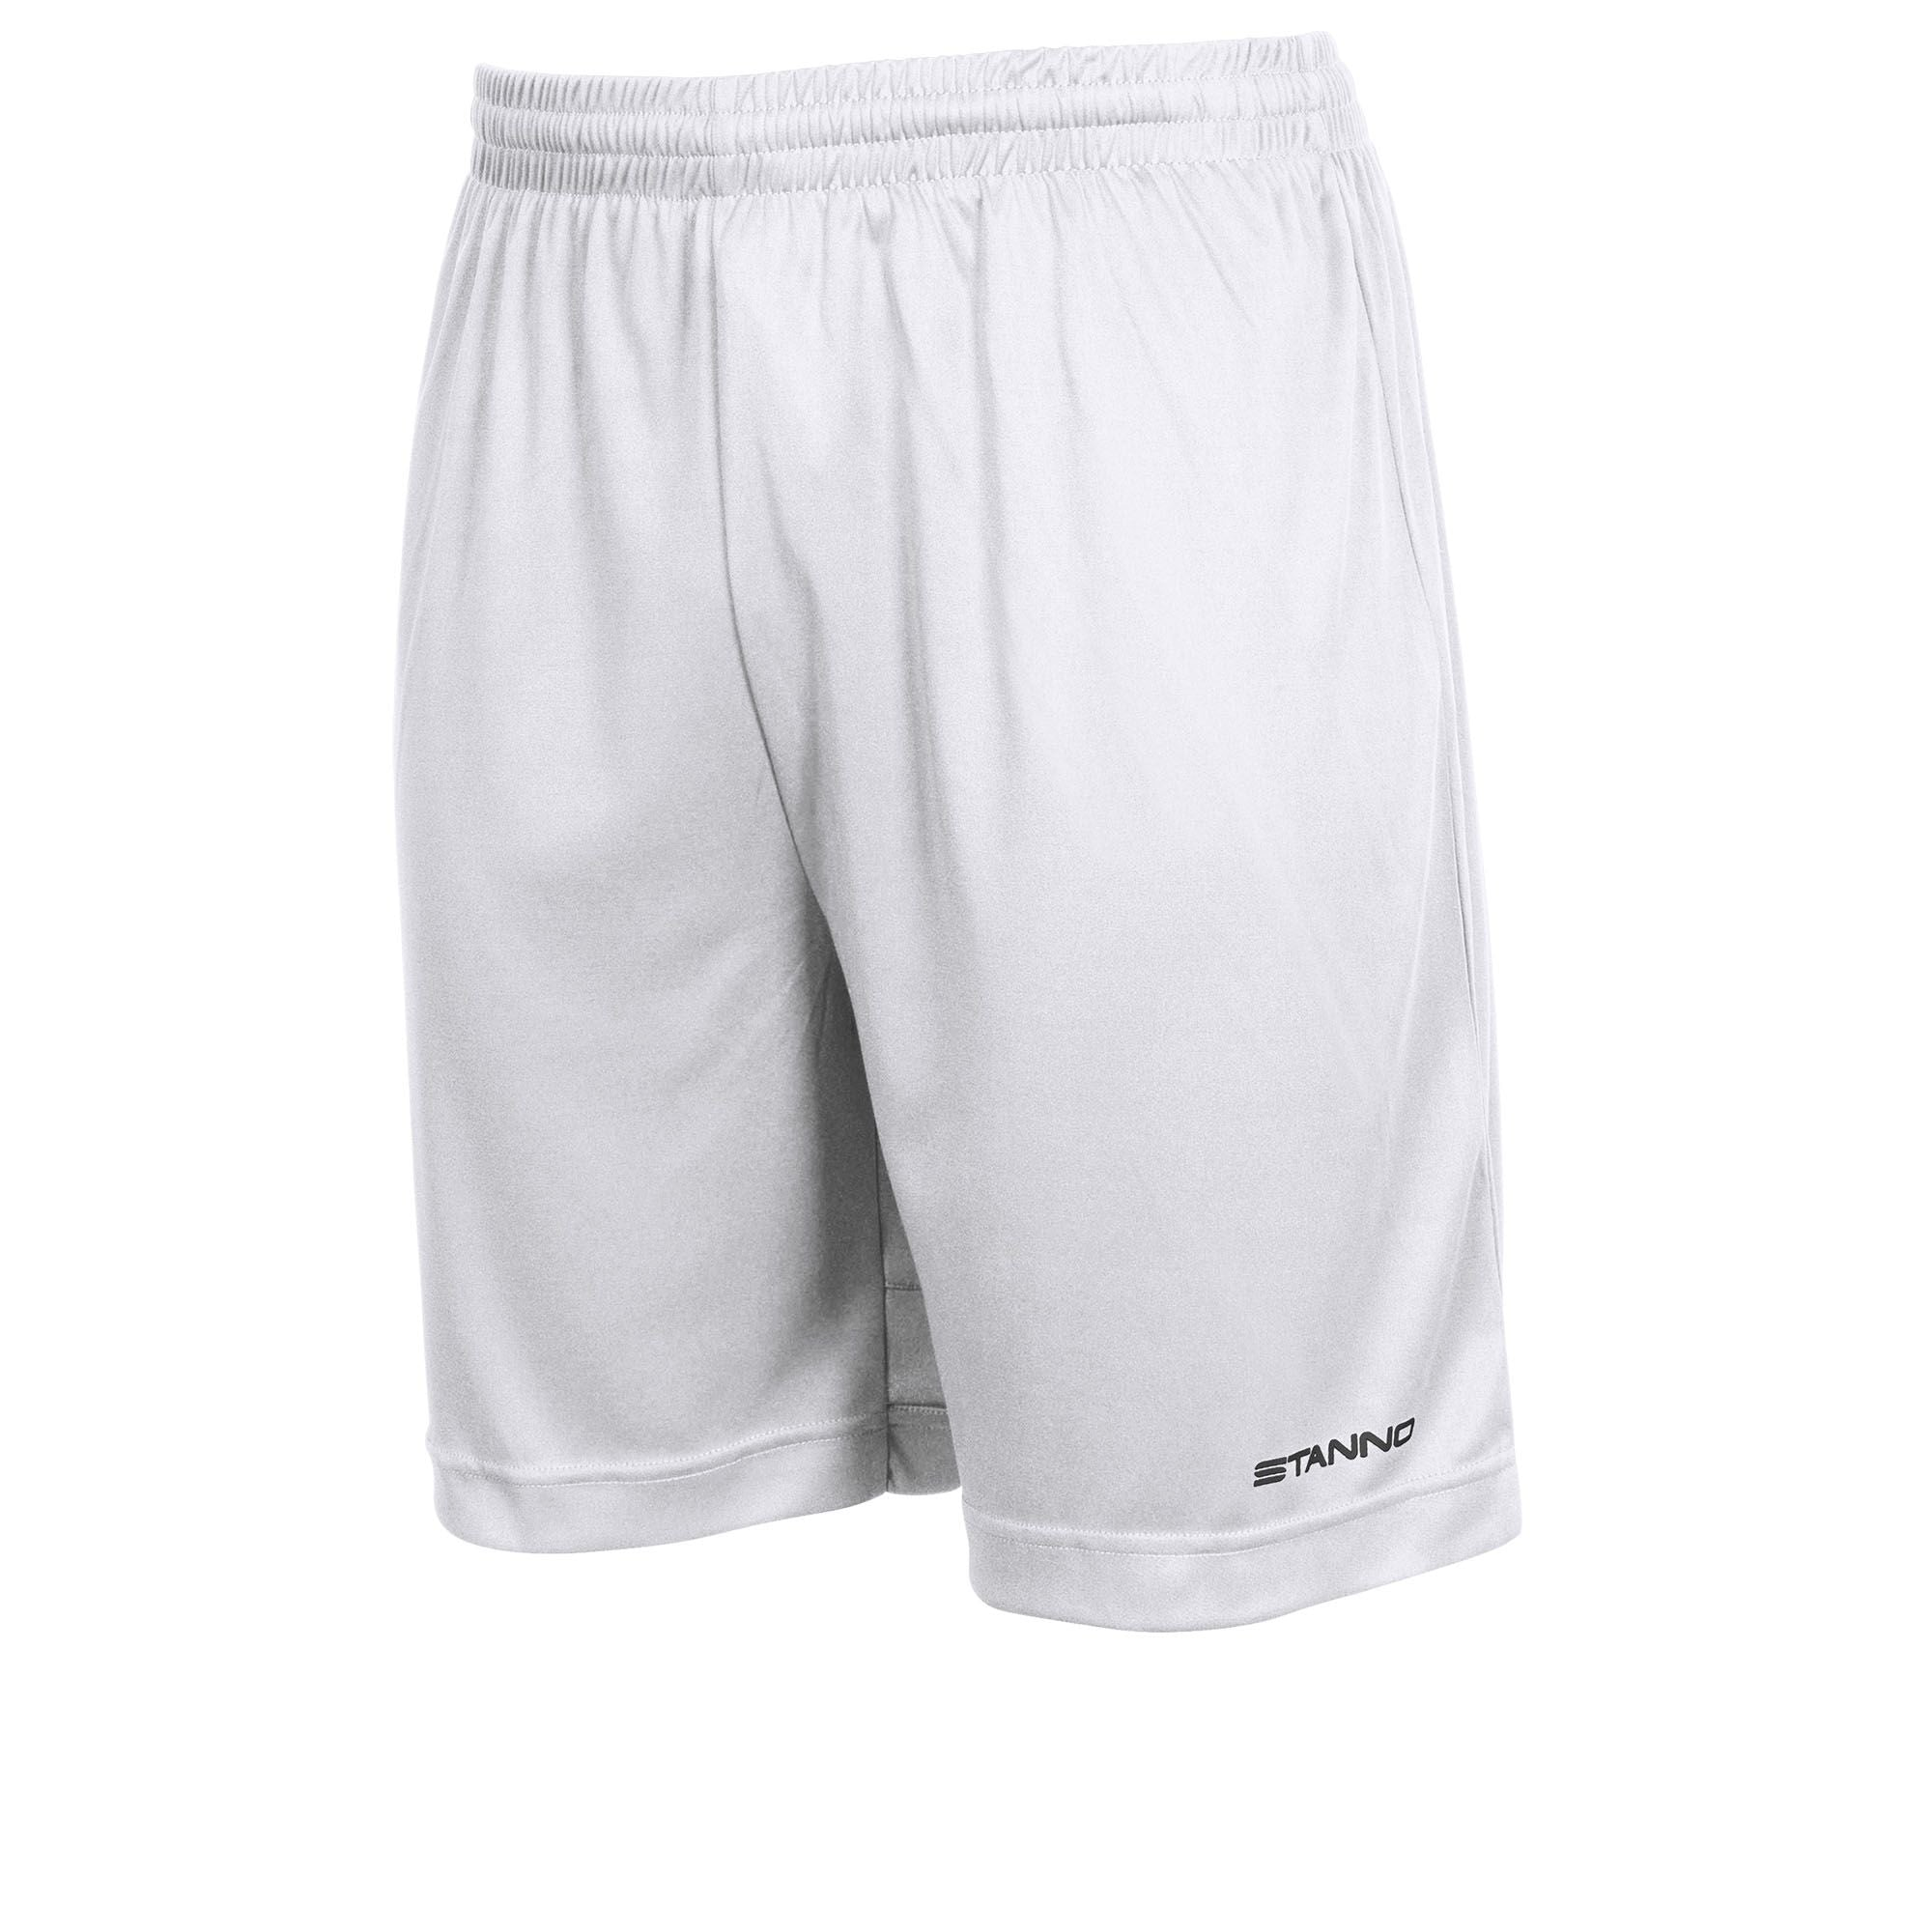 Stanno Field Shorts in white